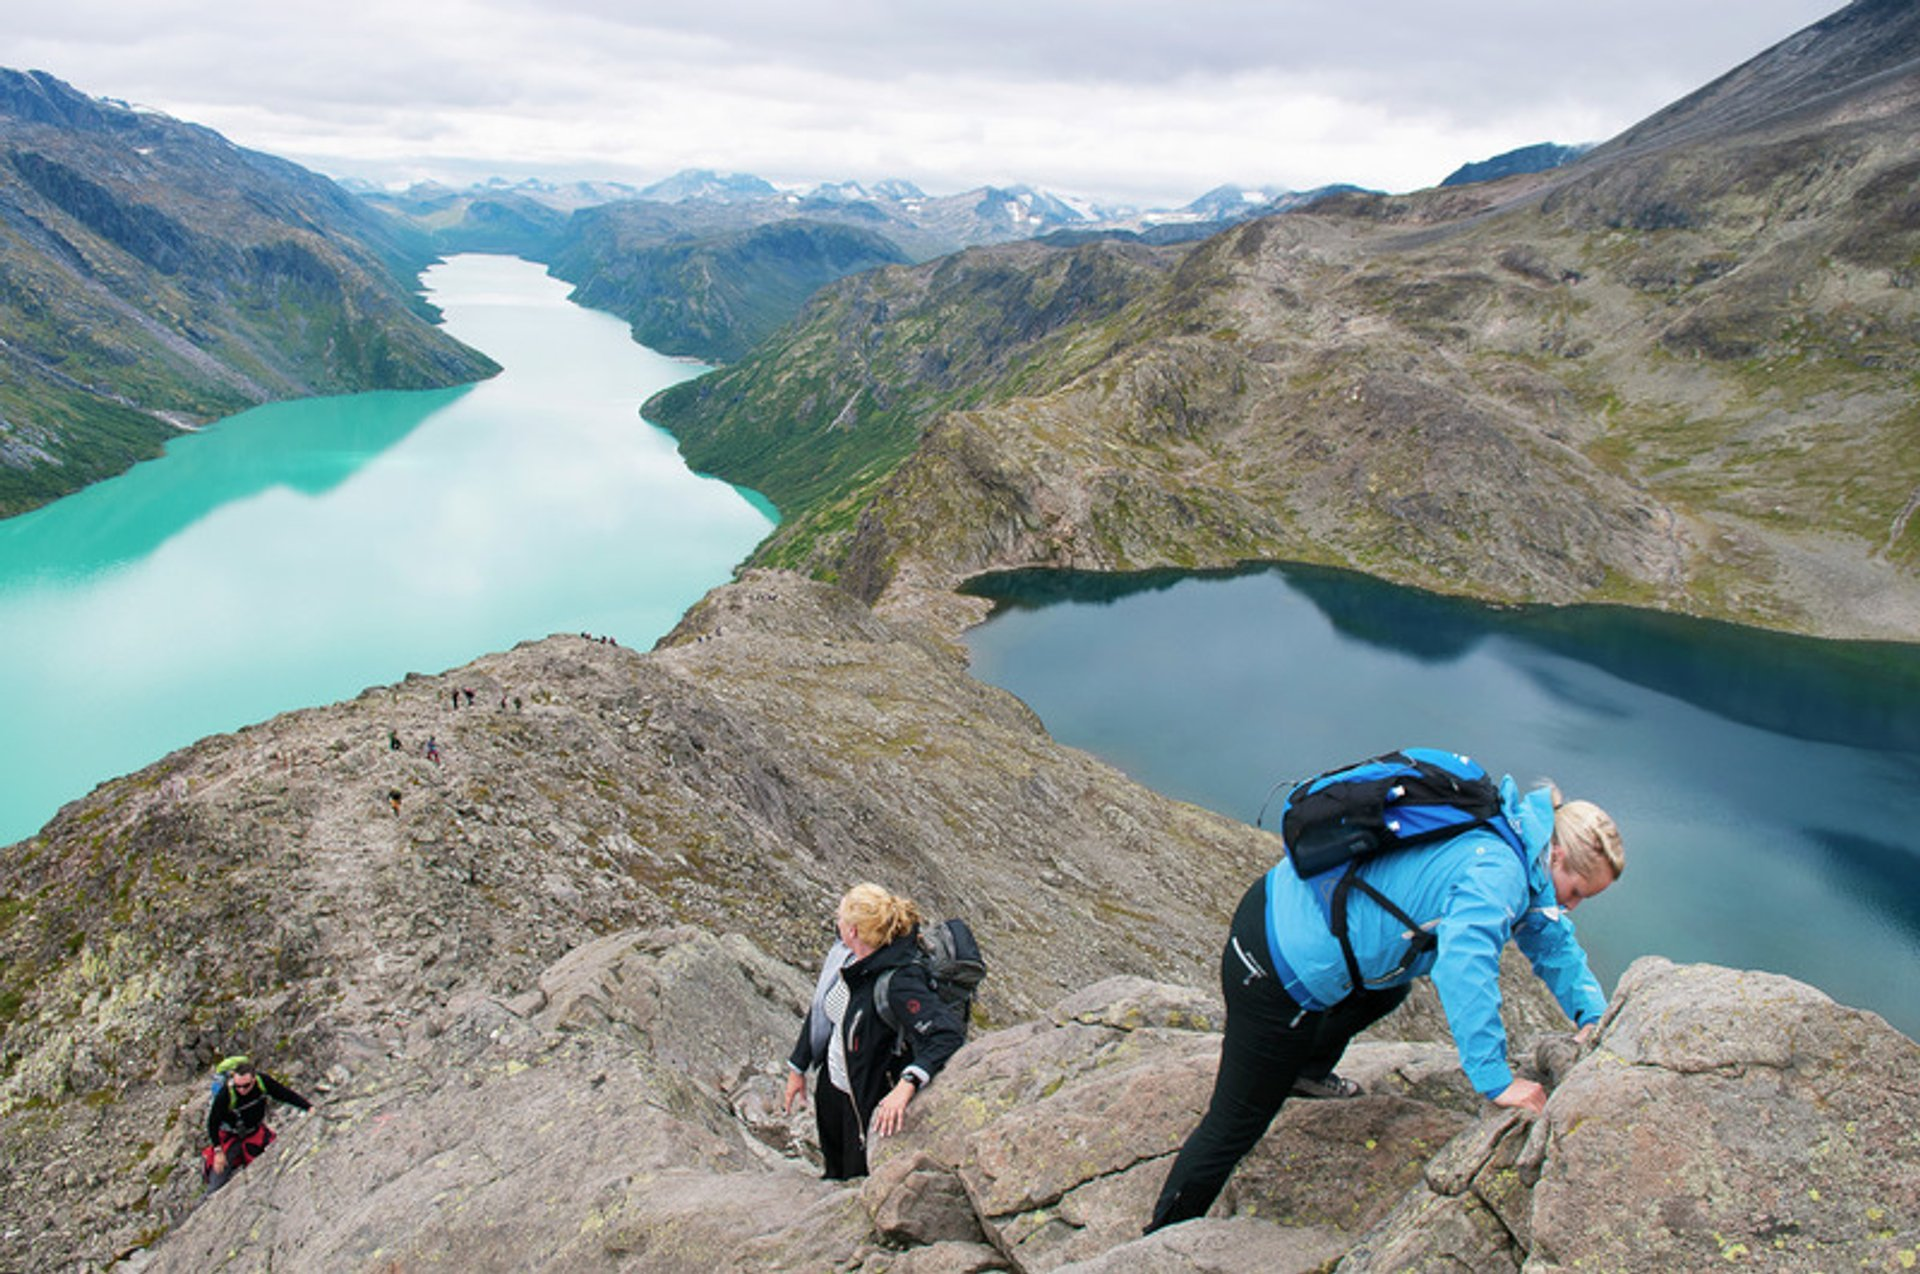 Hiking in Jotunheimen National Park in Norway 2020 - Best Time